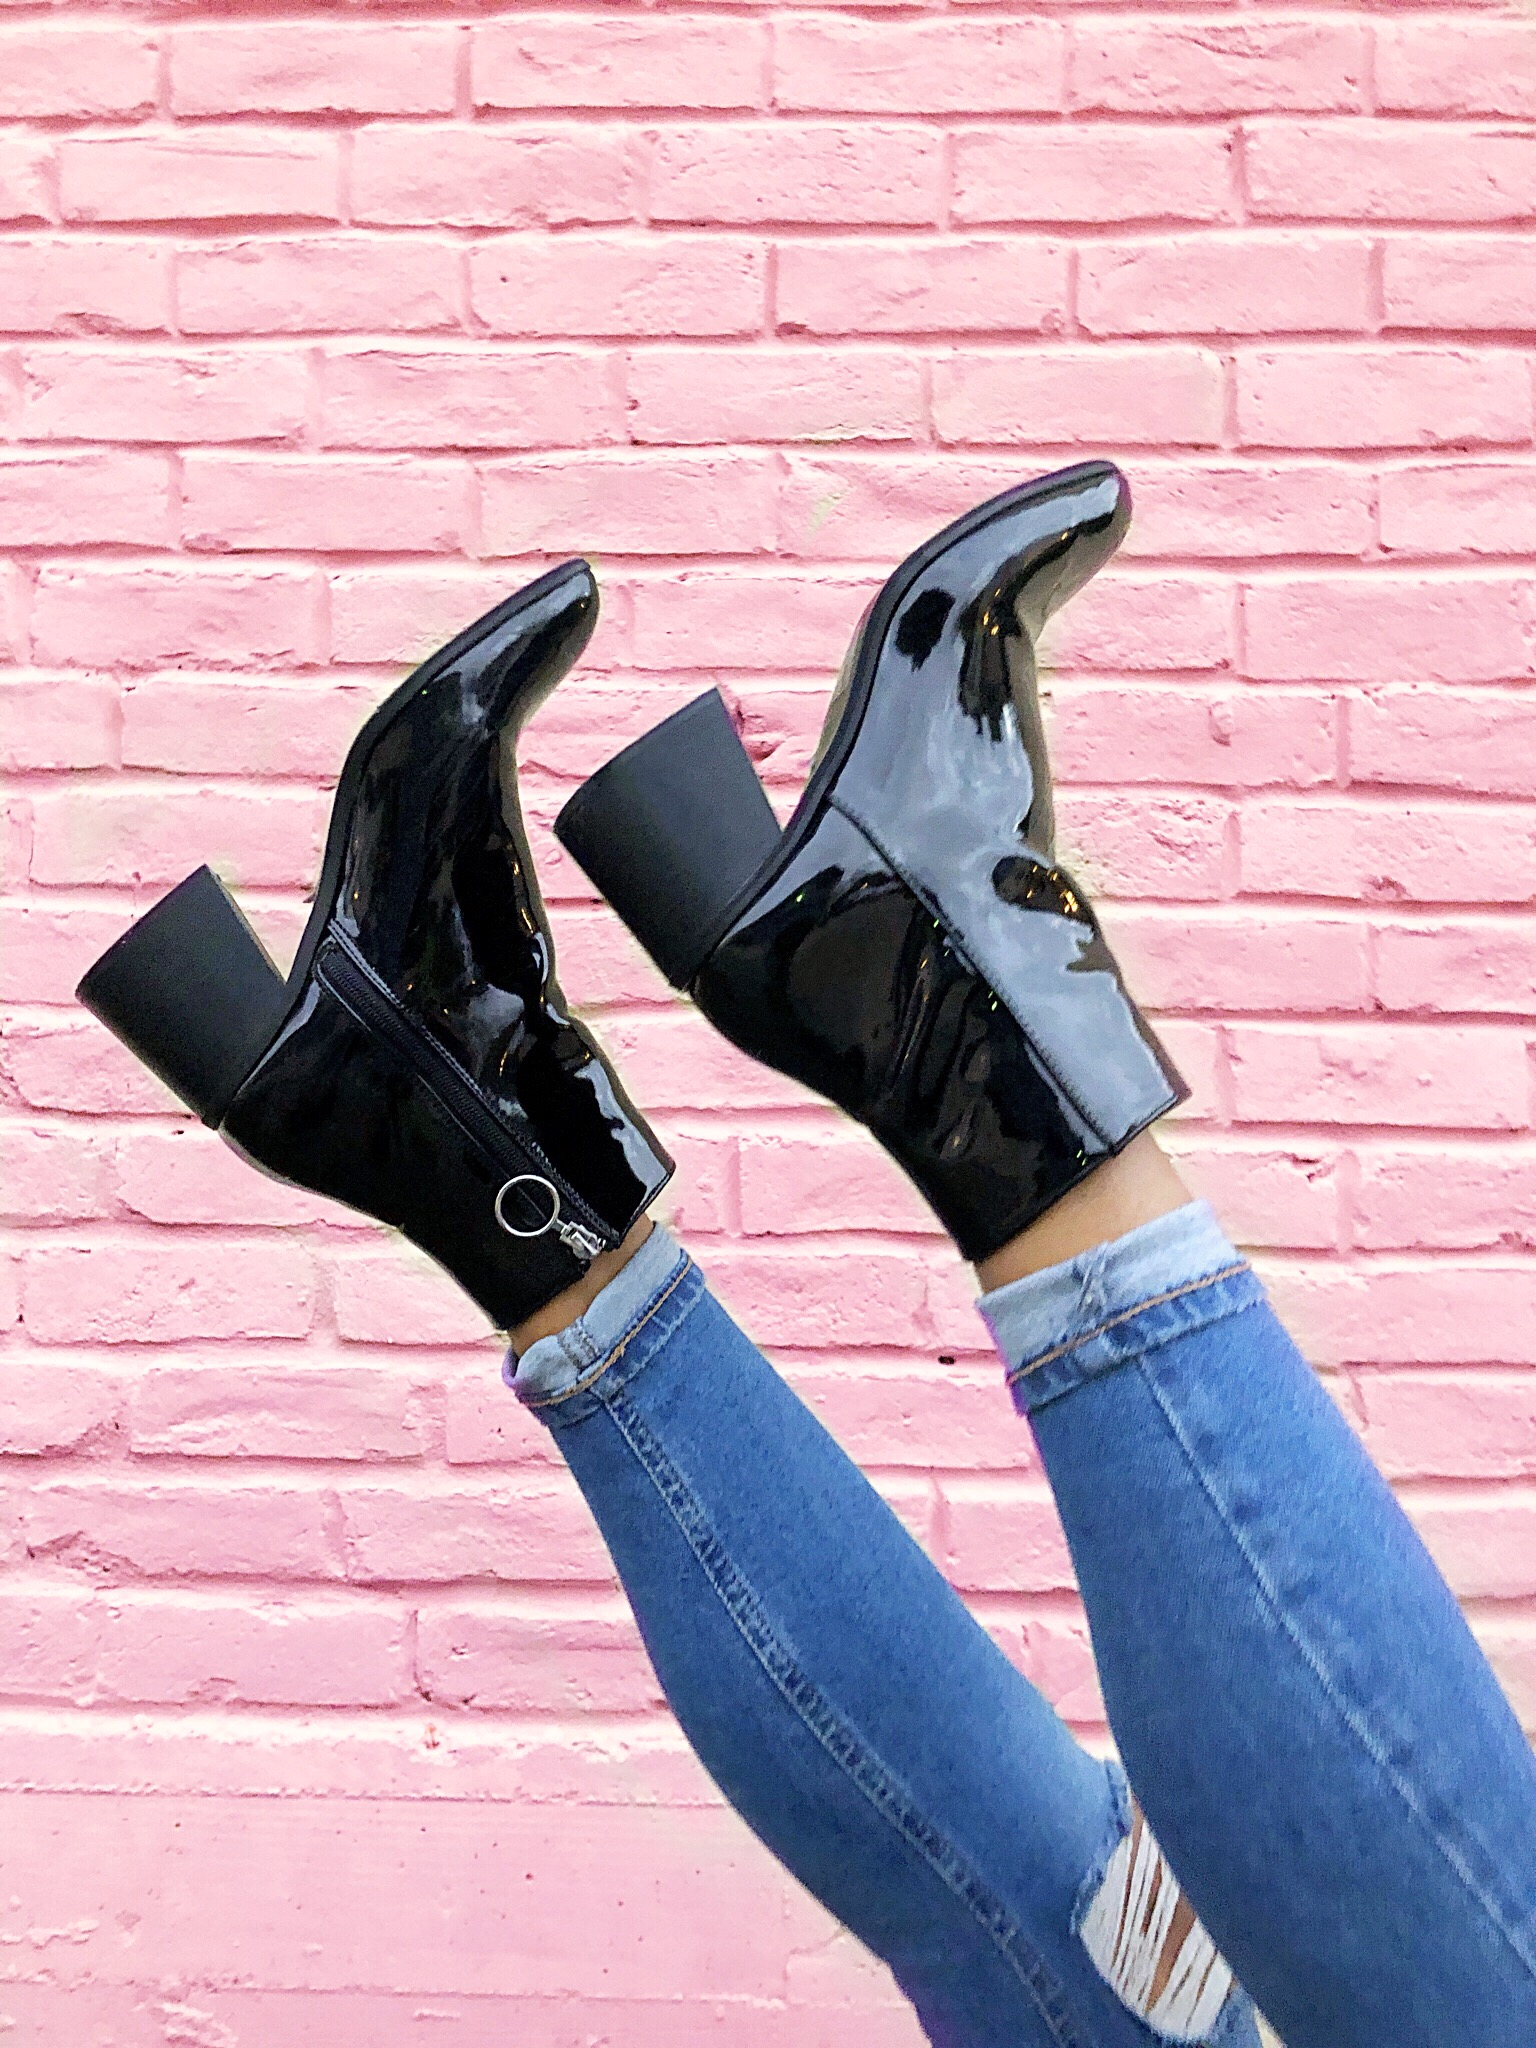 HOW TO STYLE PATENT LEATHER BOOTies TO WORK - Category: Career & WorkRead Time: 5 minutes